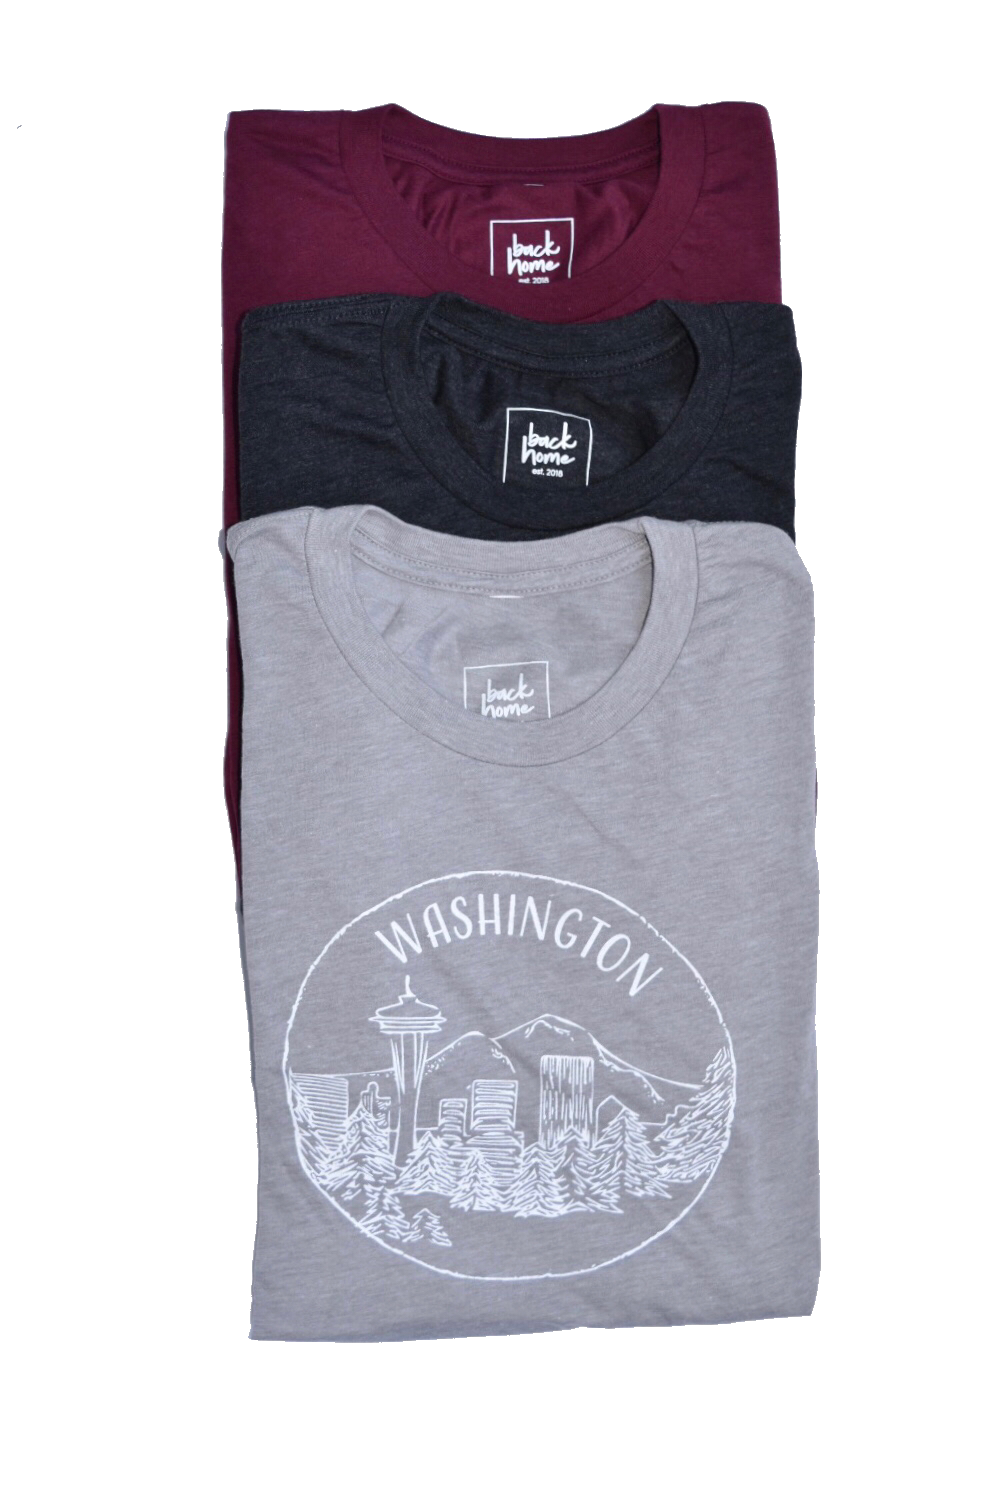 Washington State T-Shirt, Unisex - Shop Back Home